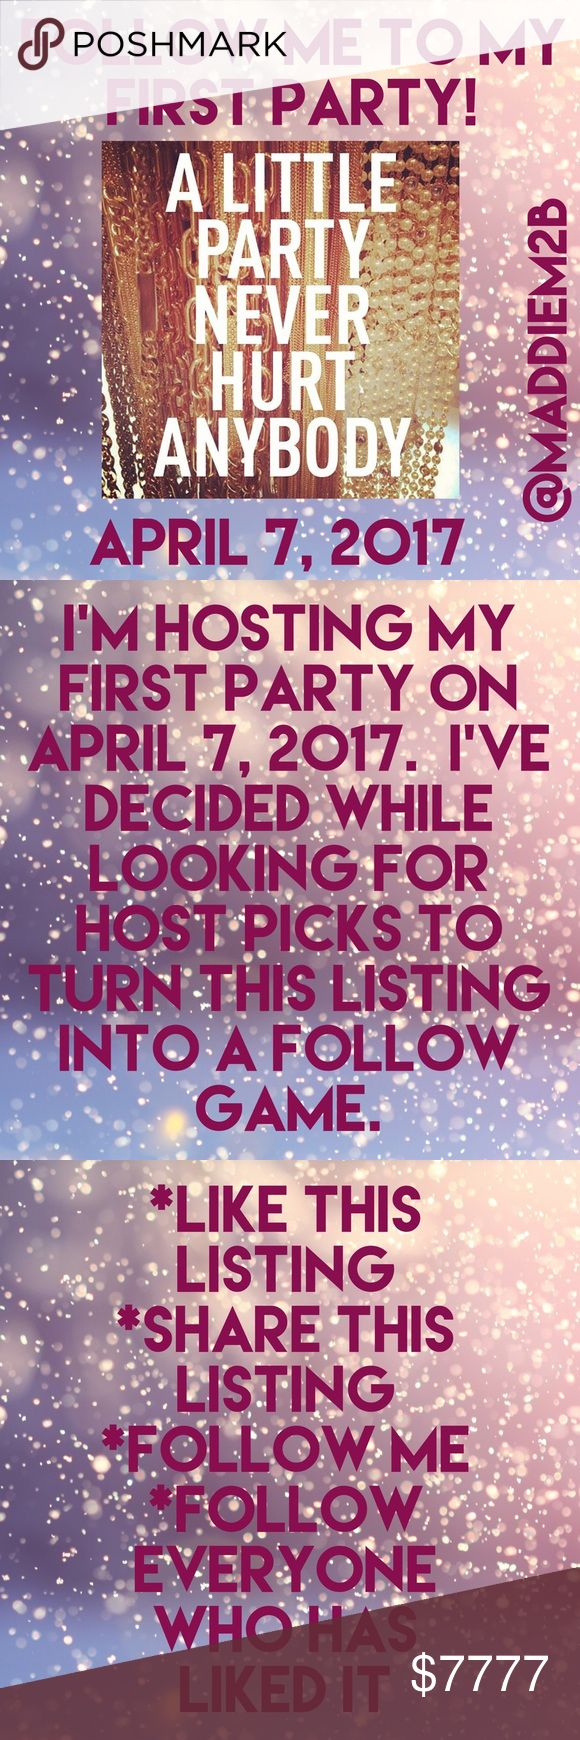 Hosting my First Party/Follow Game 2 I'm hosting my fist party on April 7, 2017. While looking for Host Picks, I've decided to turn this listing into my second Follow Fame. Let's grow our followers together and party together!!! Other